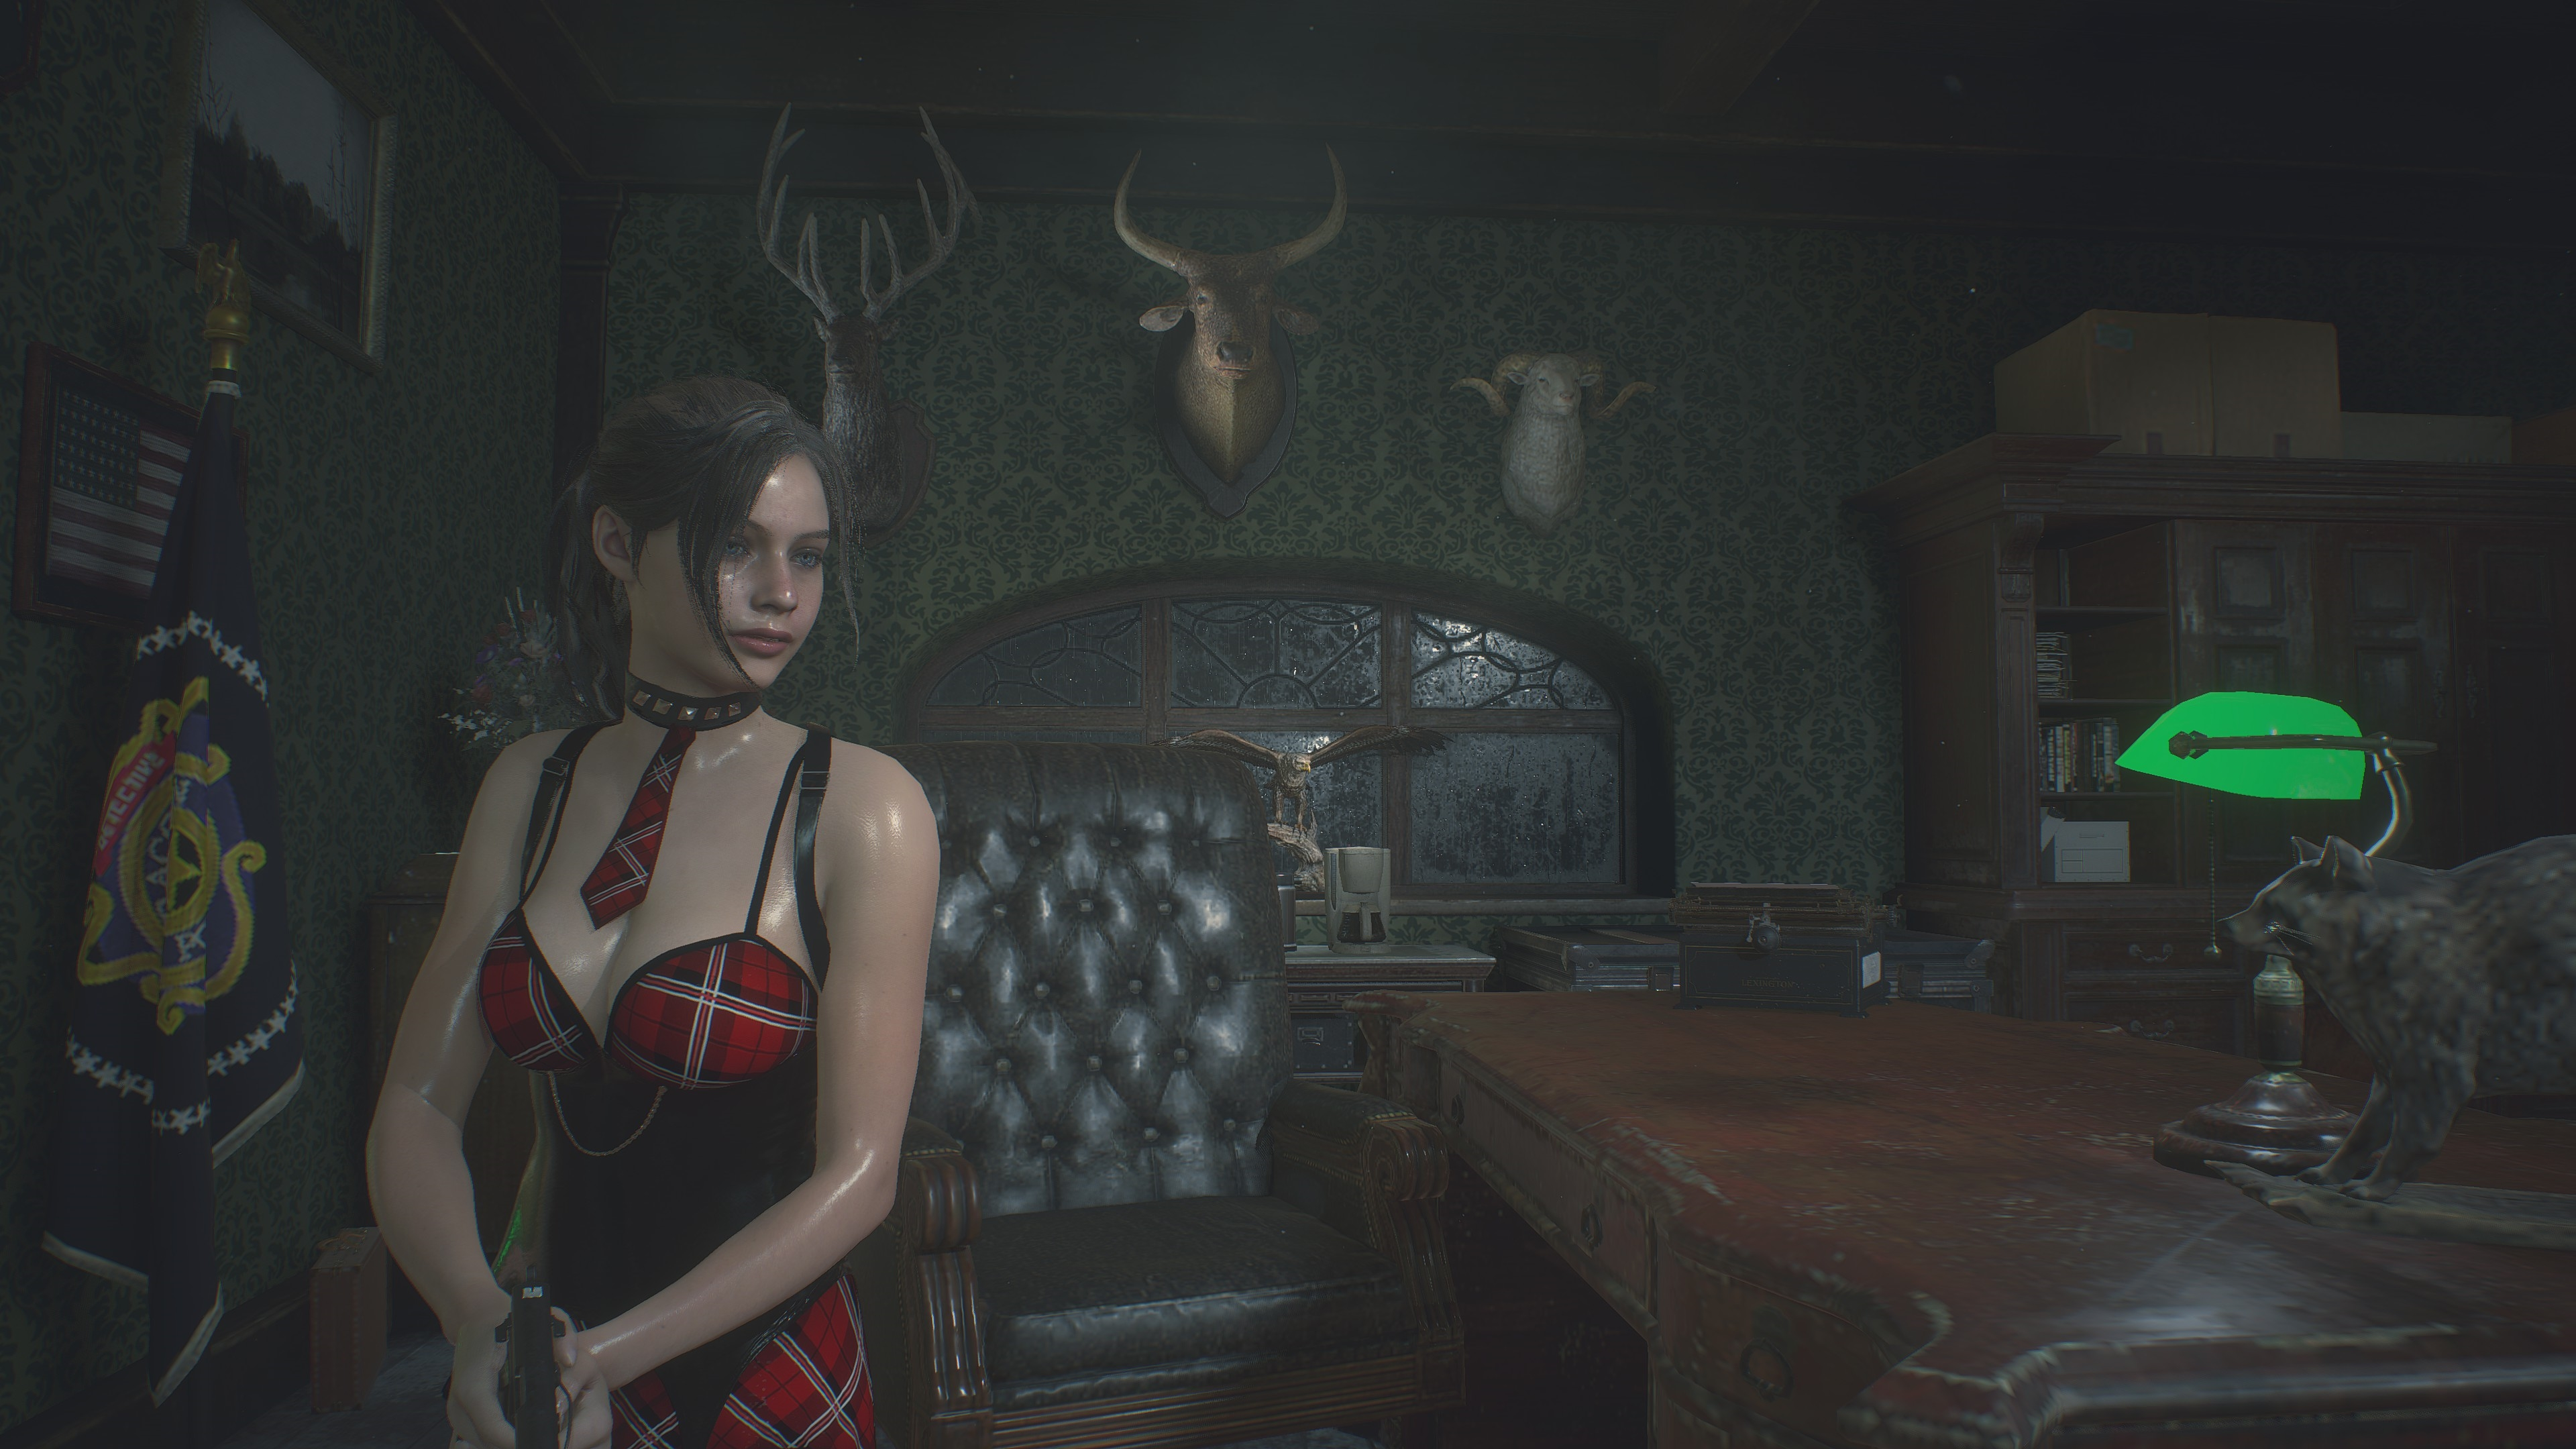 RESIDENT EVIL 2 / BIOHAZARD RE:2 Claire College girl 4k ultra graphics Nvidia GeForce RTX 2080 - Resident Evil 2